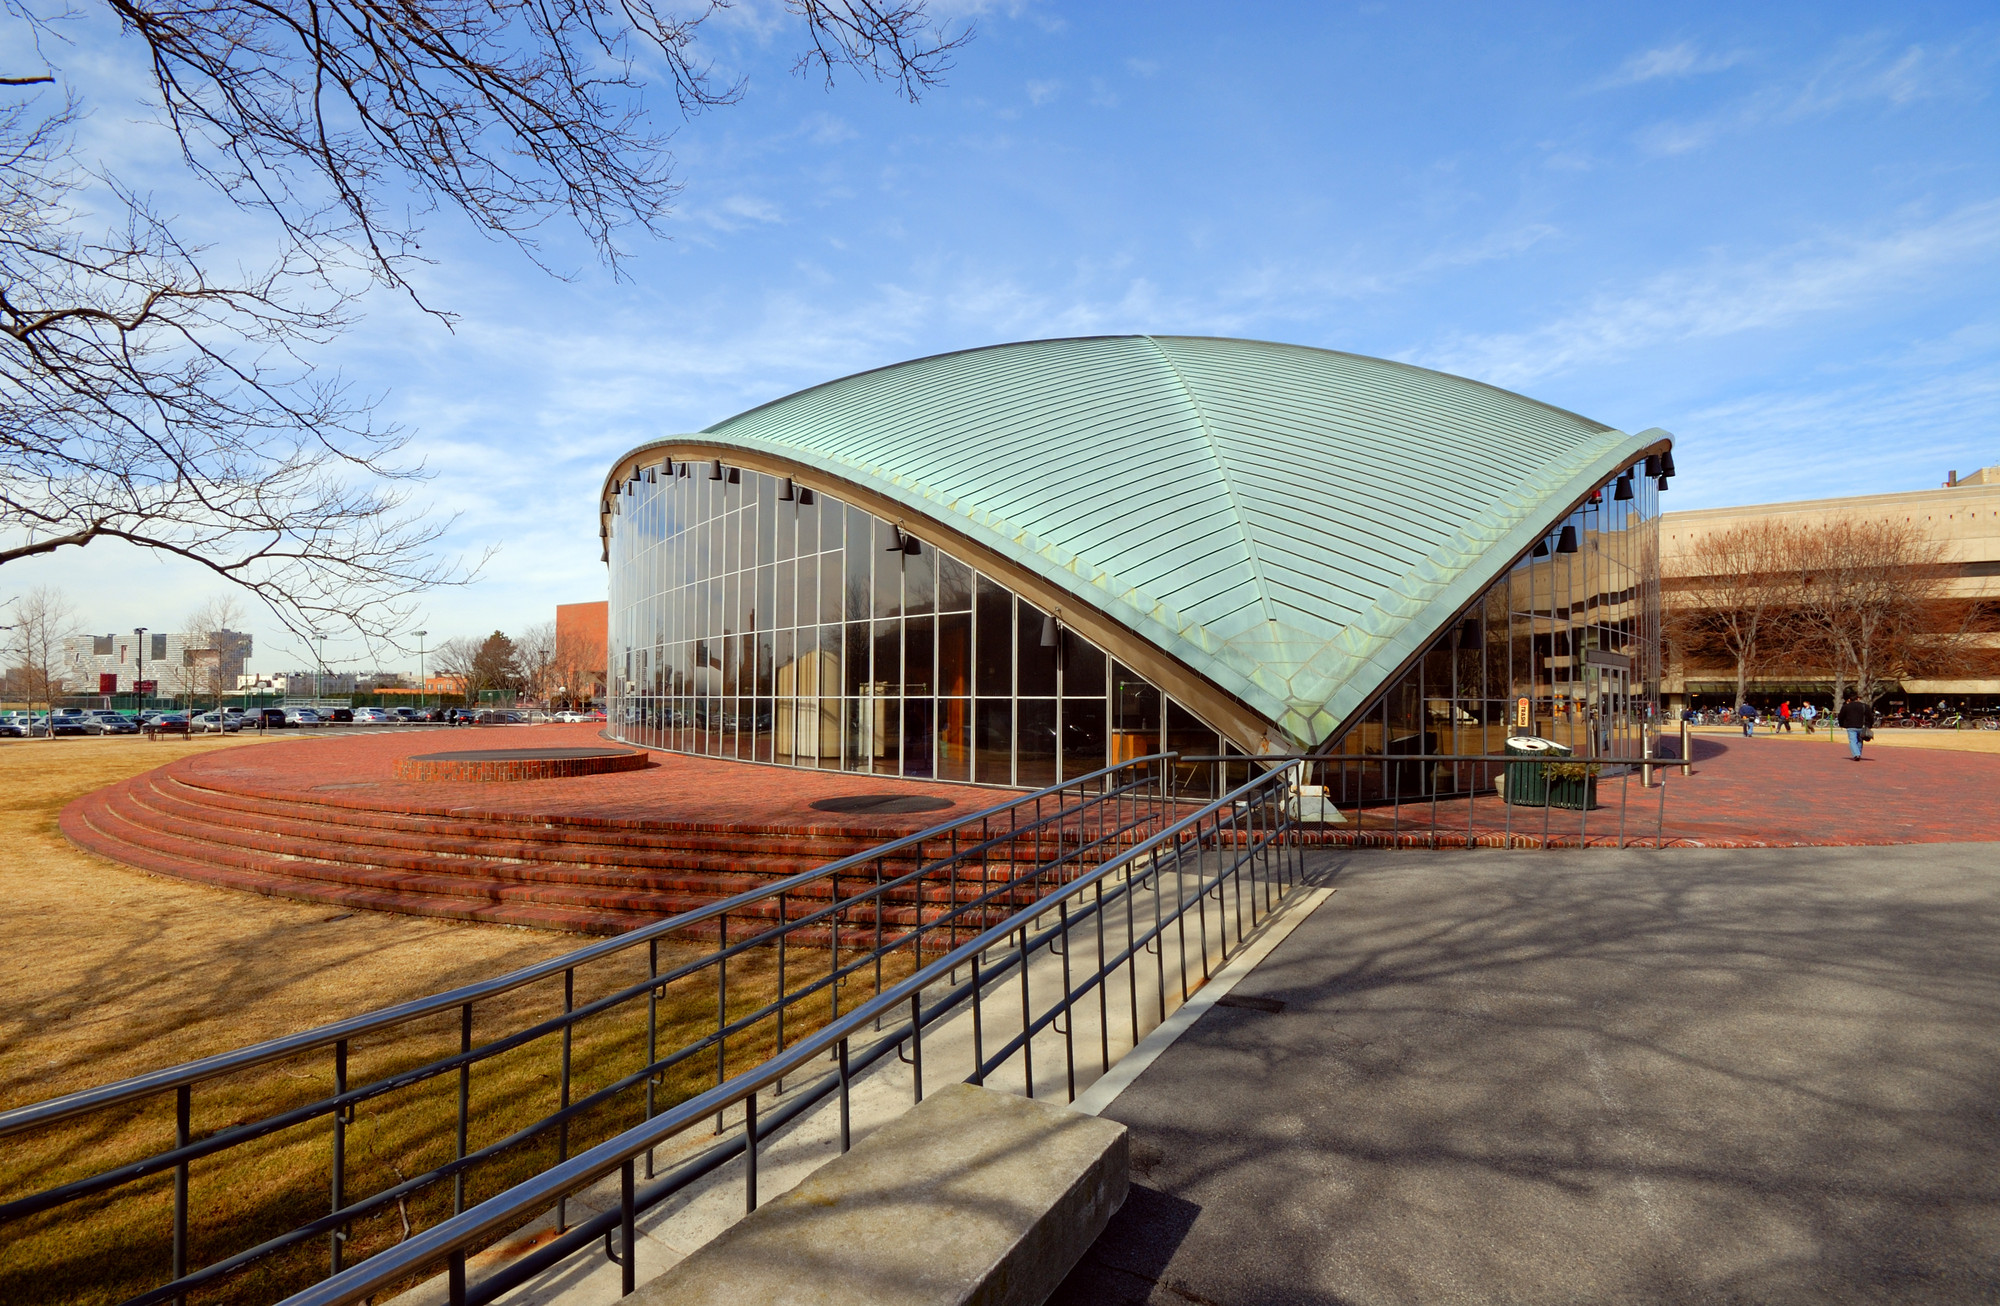 Clásicos de Arquitectura: Auditorio Kresge / Eero Saarinen and Associates, Kresge Auditorium at MIT, Cambridge, Massachusetts © Jorge Salcedo / Shutterstock